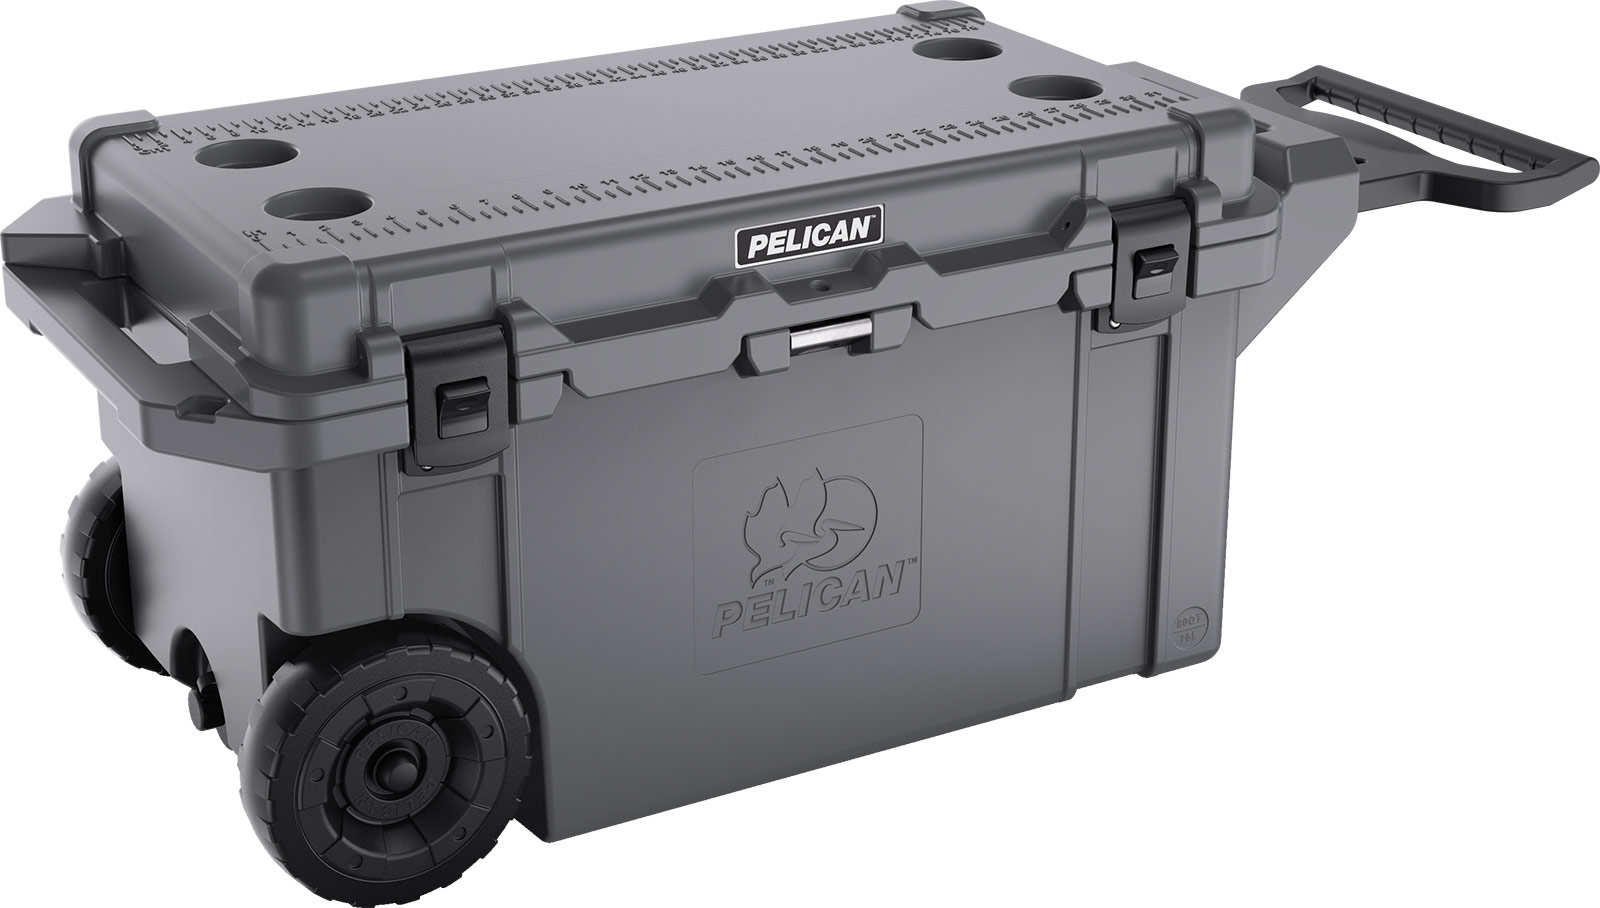 best loved 94187 234ec pelican 80qt cooler gray wheeled coolers. ×. ×